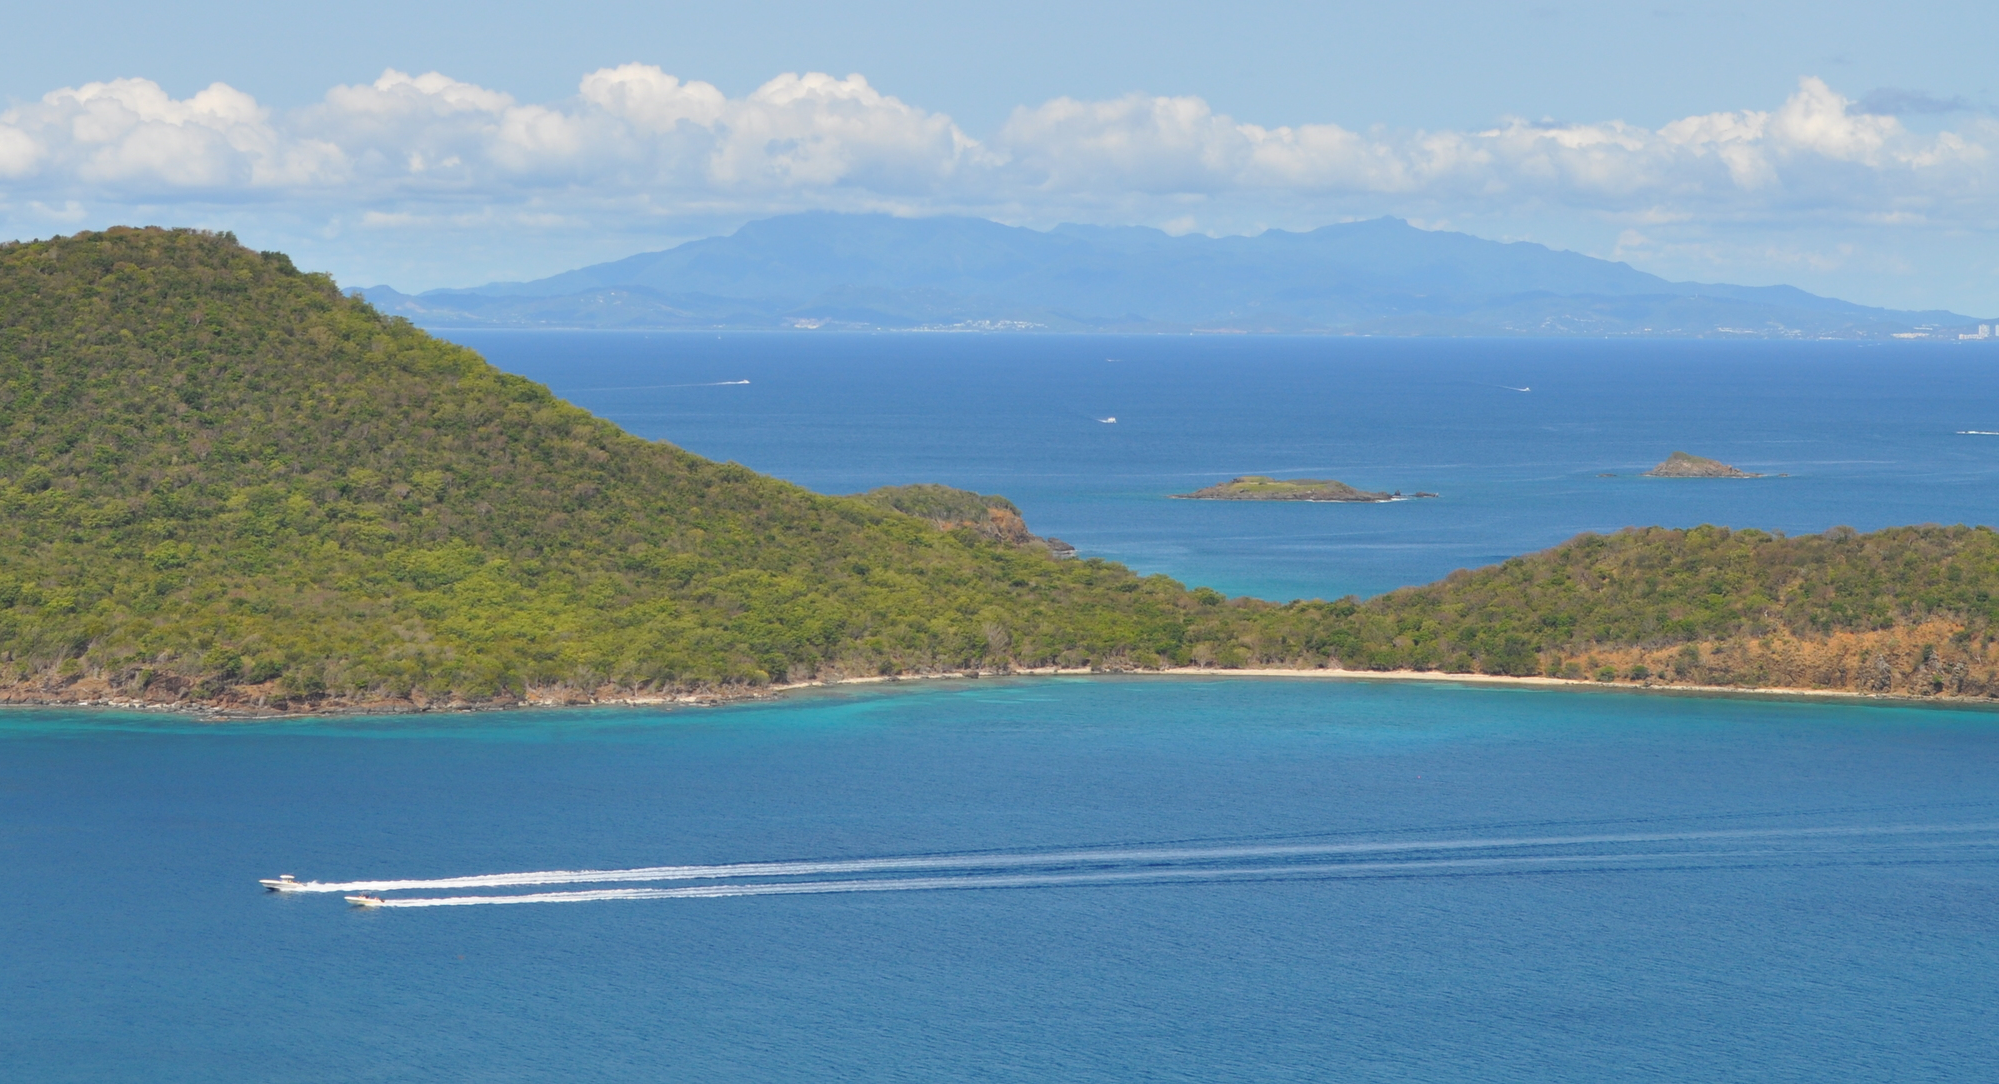 View of the Luis Peña Cay, in the background you can see Luquillo's Mountain Range Photo: Javier Vélez Arocho